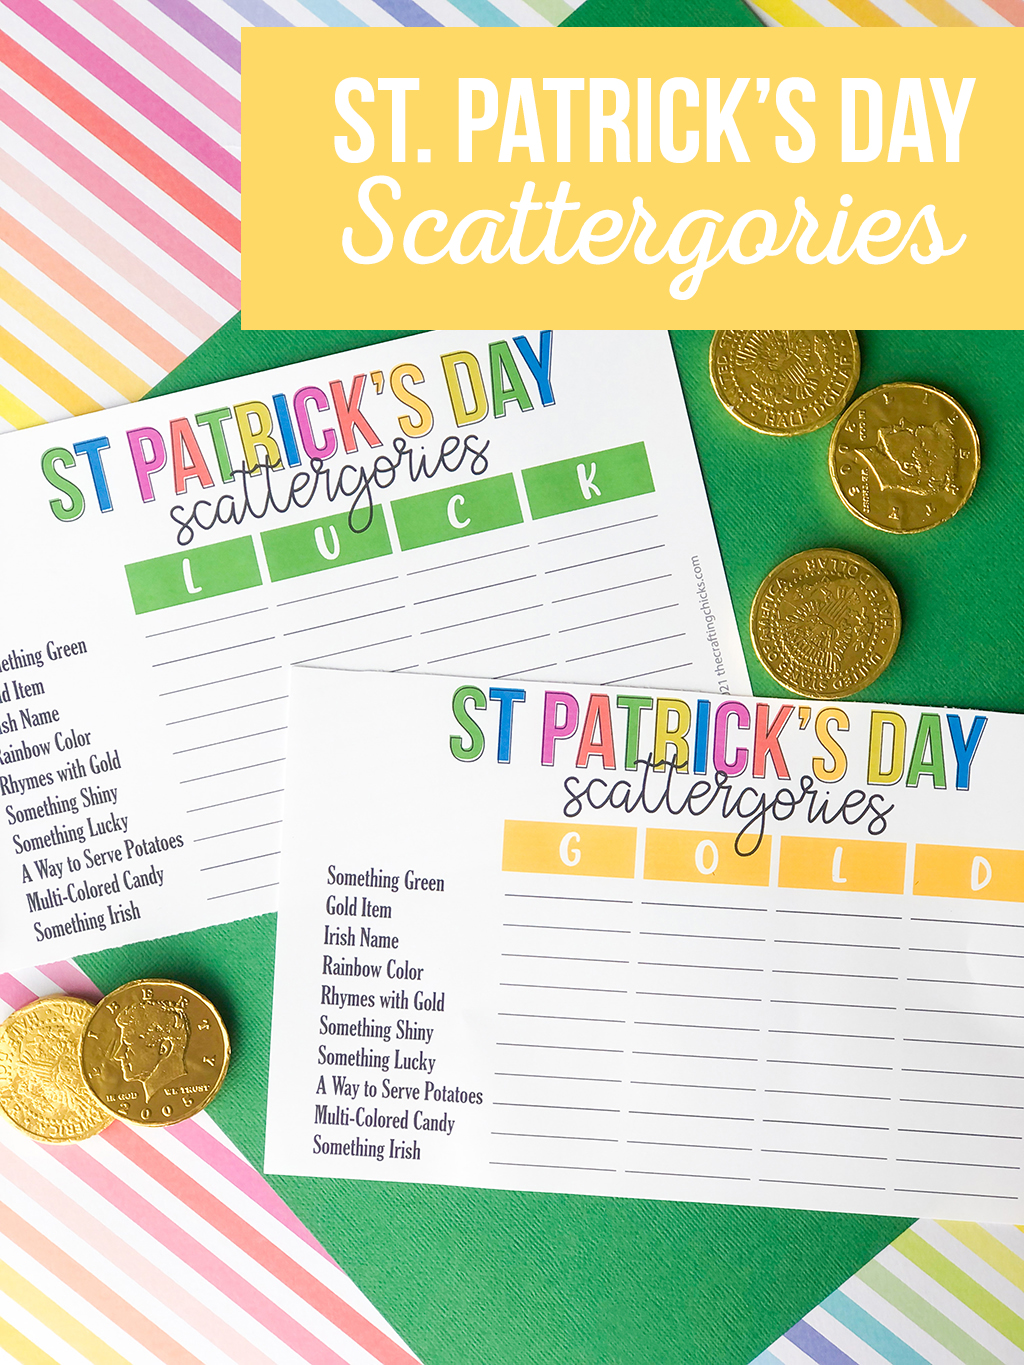 St. Patrick's Day Scattergories on a rainbow colored, and a green paper background with gold coins around.